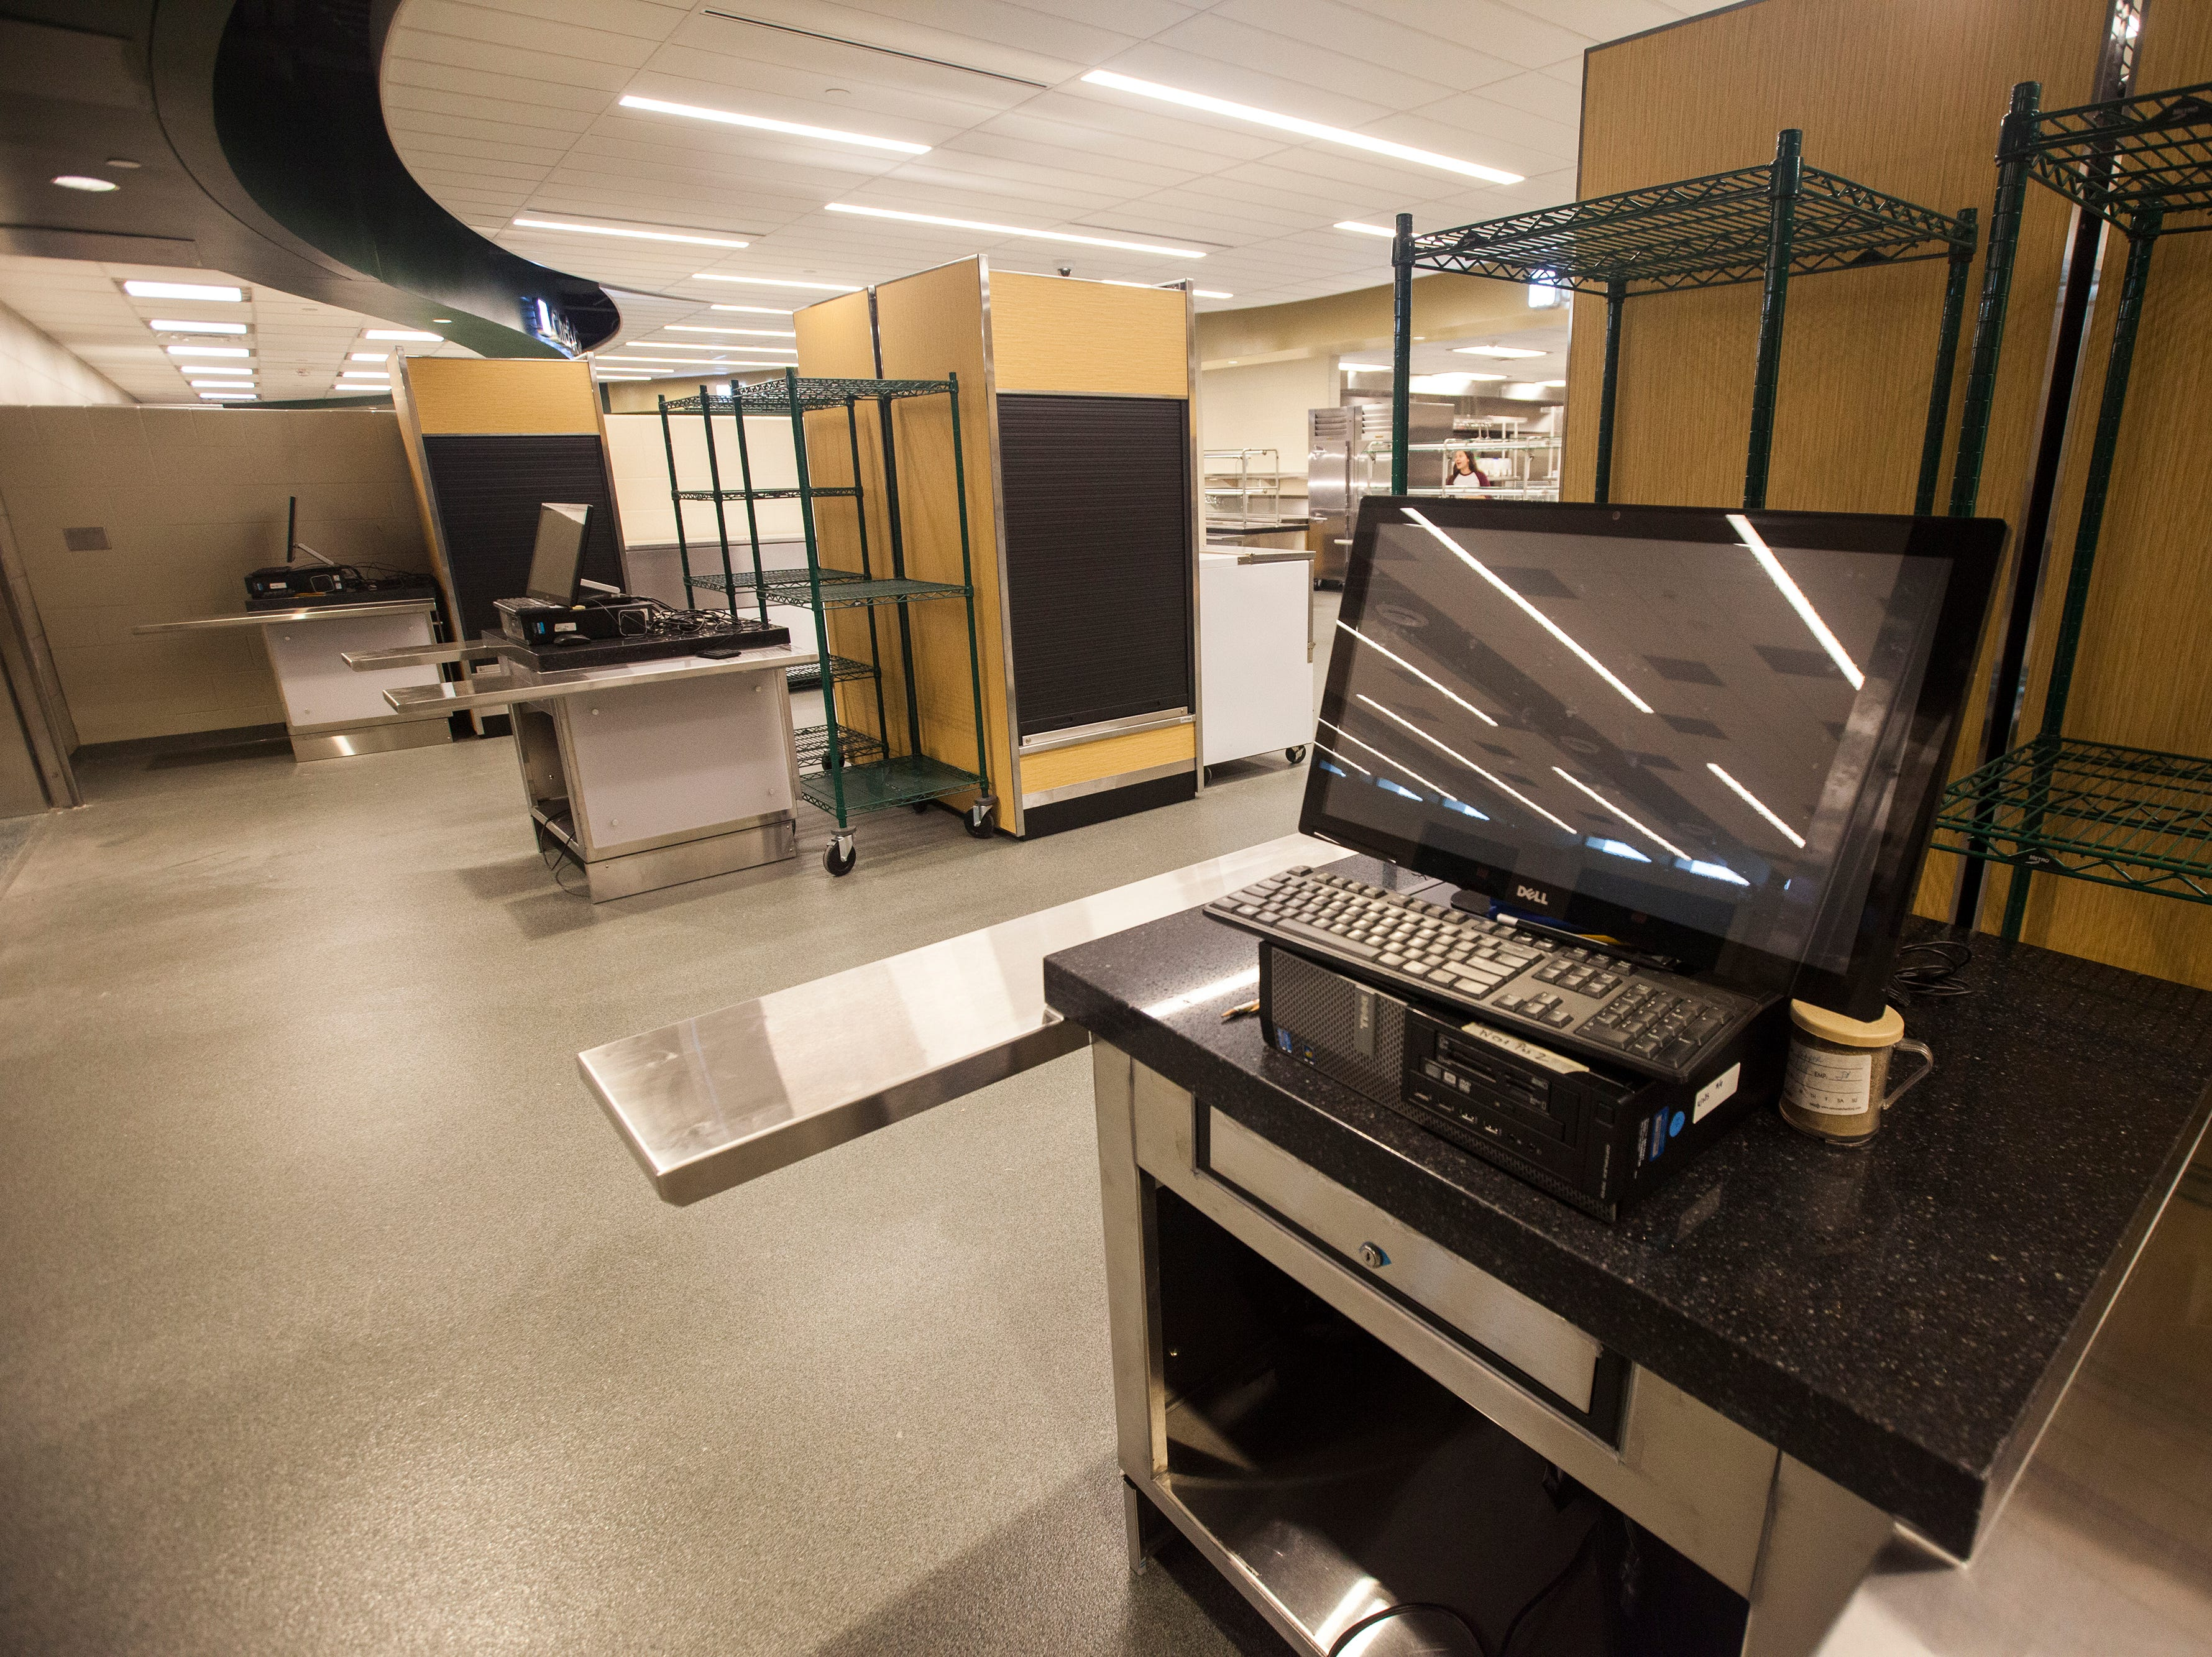 A checkout machine is seen inside the cafeteria during a tour of a recently completed addition to facilities on Wednesday, Aug. 15, 2018, at West High School in Iowa City. The addition was the first phase of renovations set to take place for the building that opened in 1968.